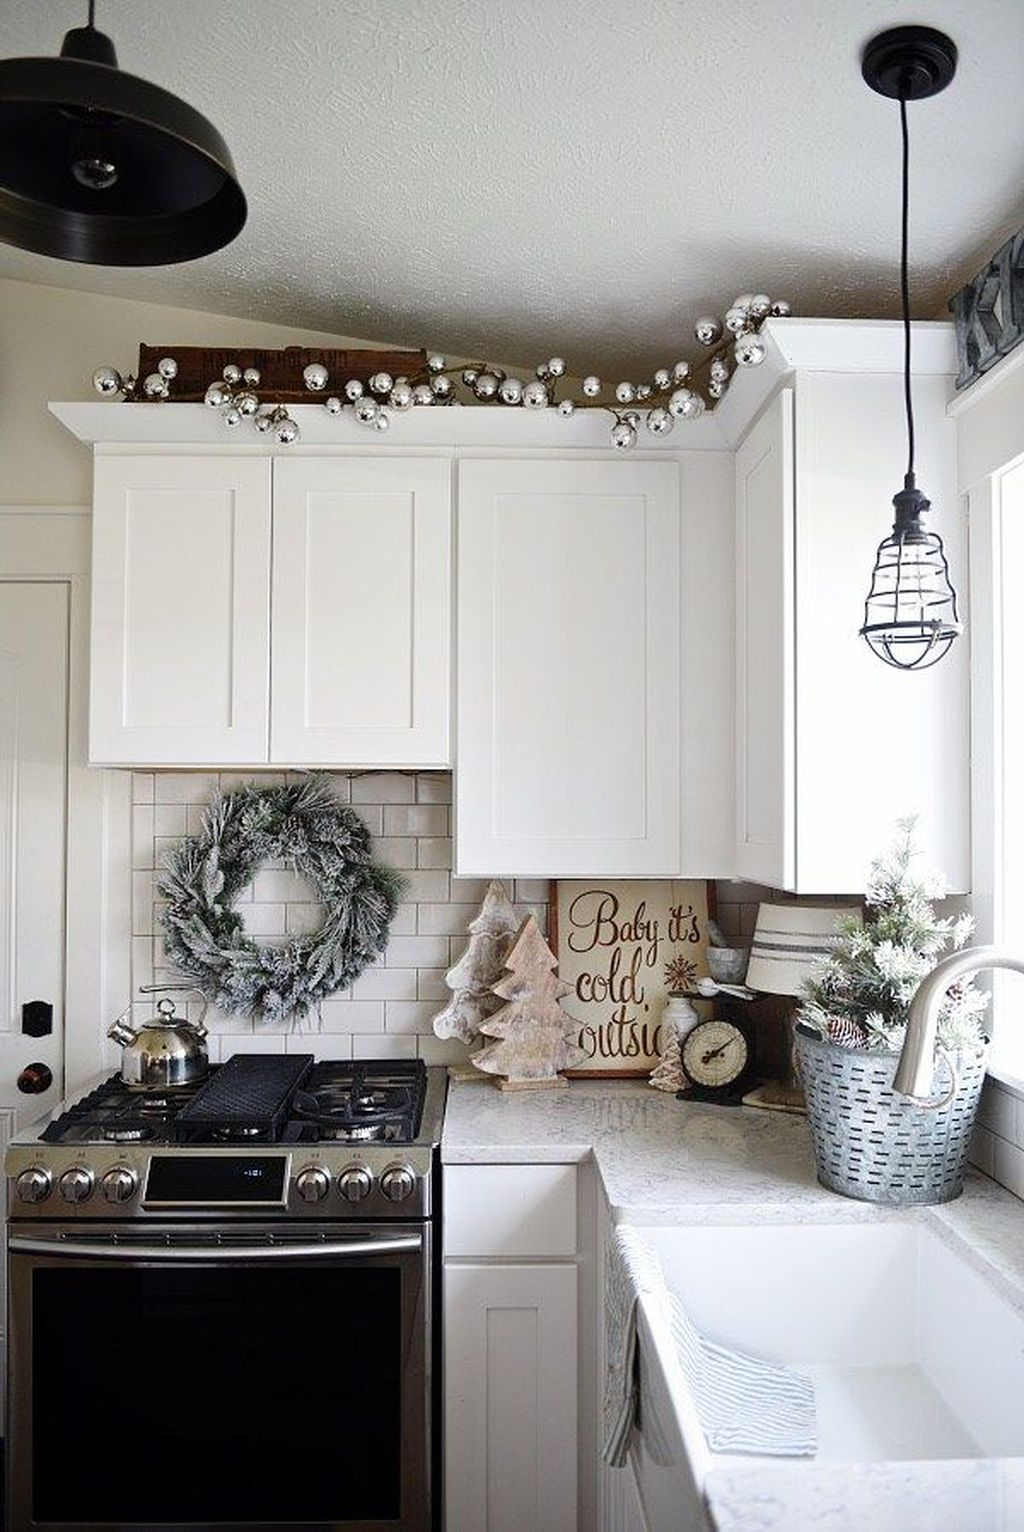 Stunning Winter Theme Kitchen Decorating Ideas 33